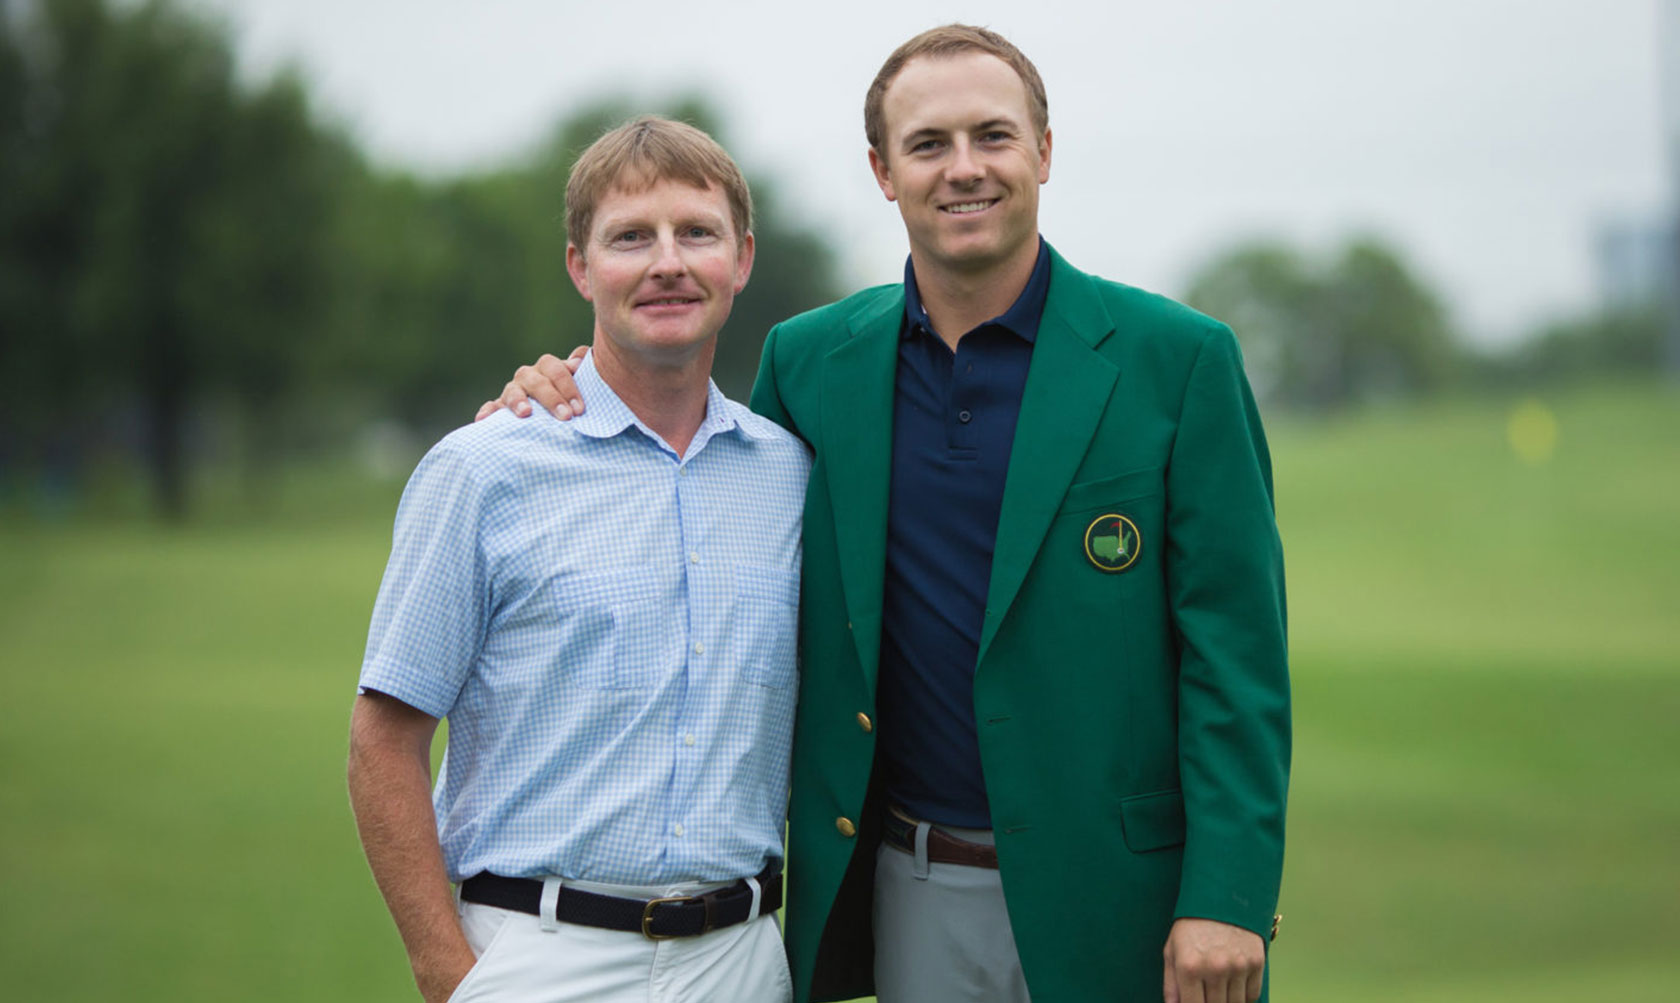 Jordan-Spieth-et-son-coach-altus-performence-paris-golf